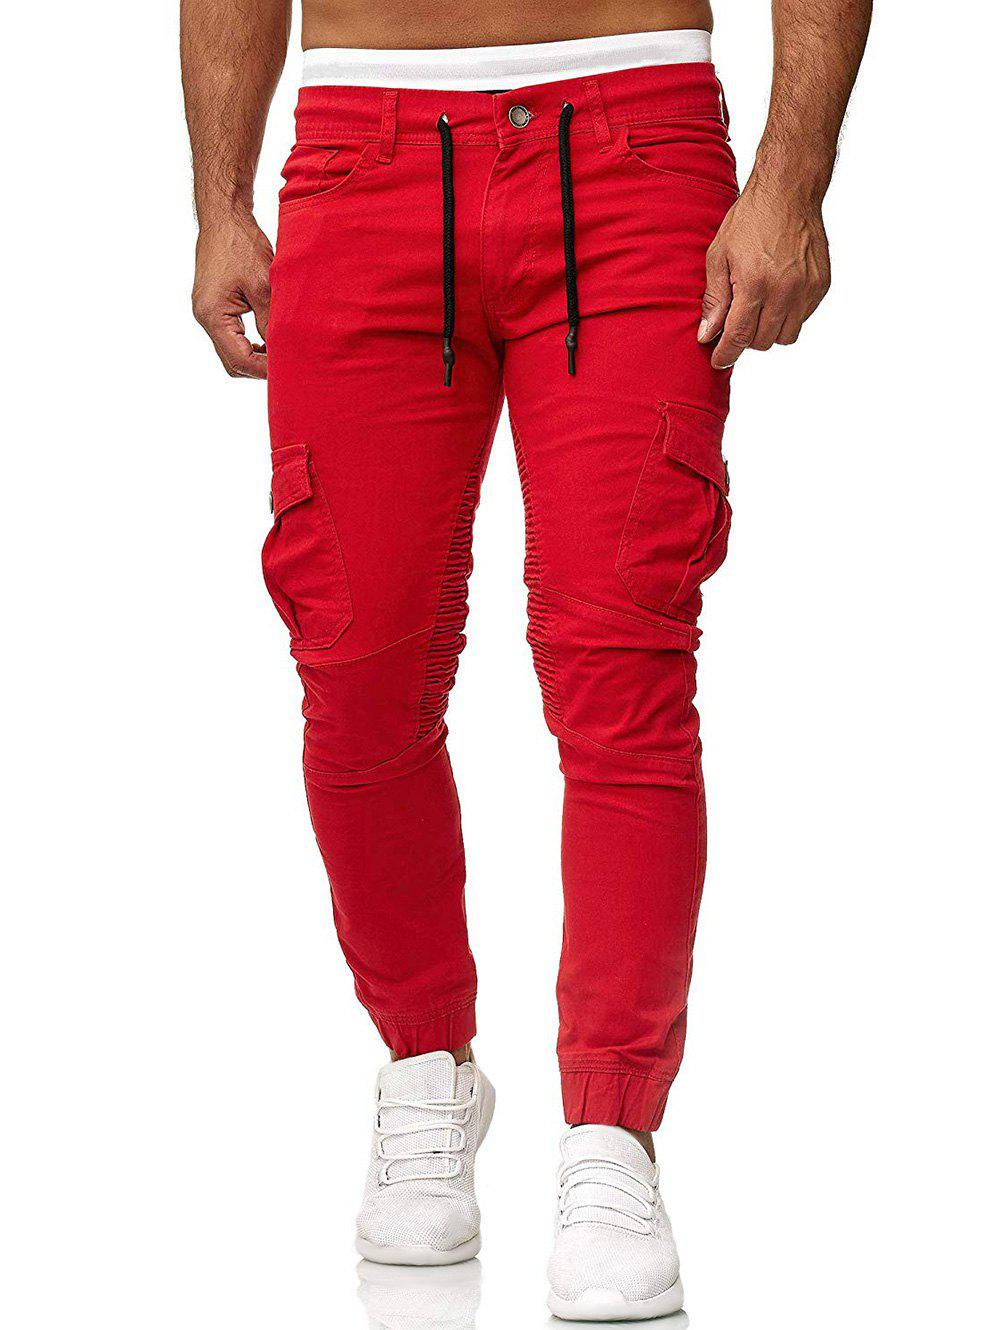 Pleated Trim Drawstring Cargo Jogger Pants - RED 3XL